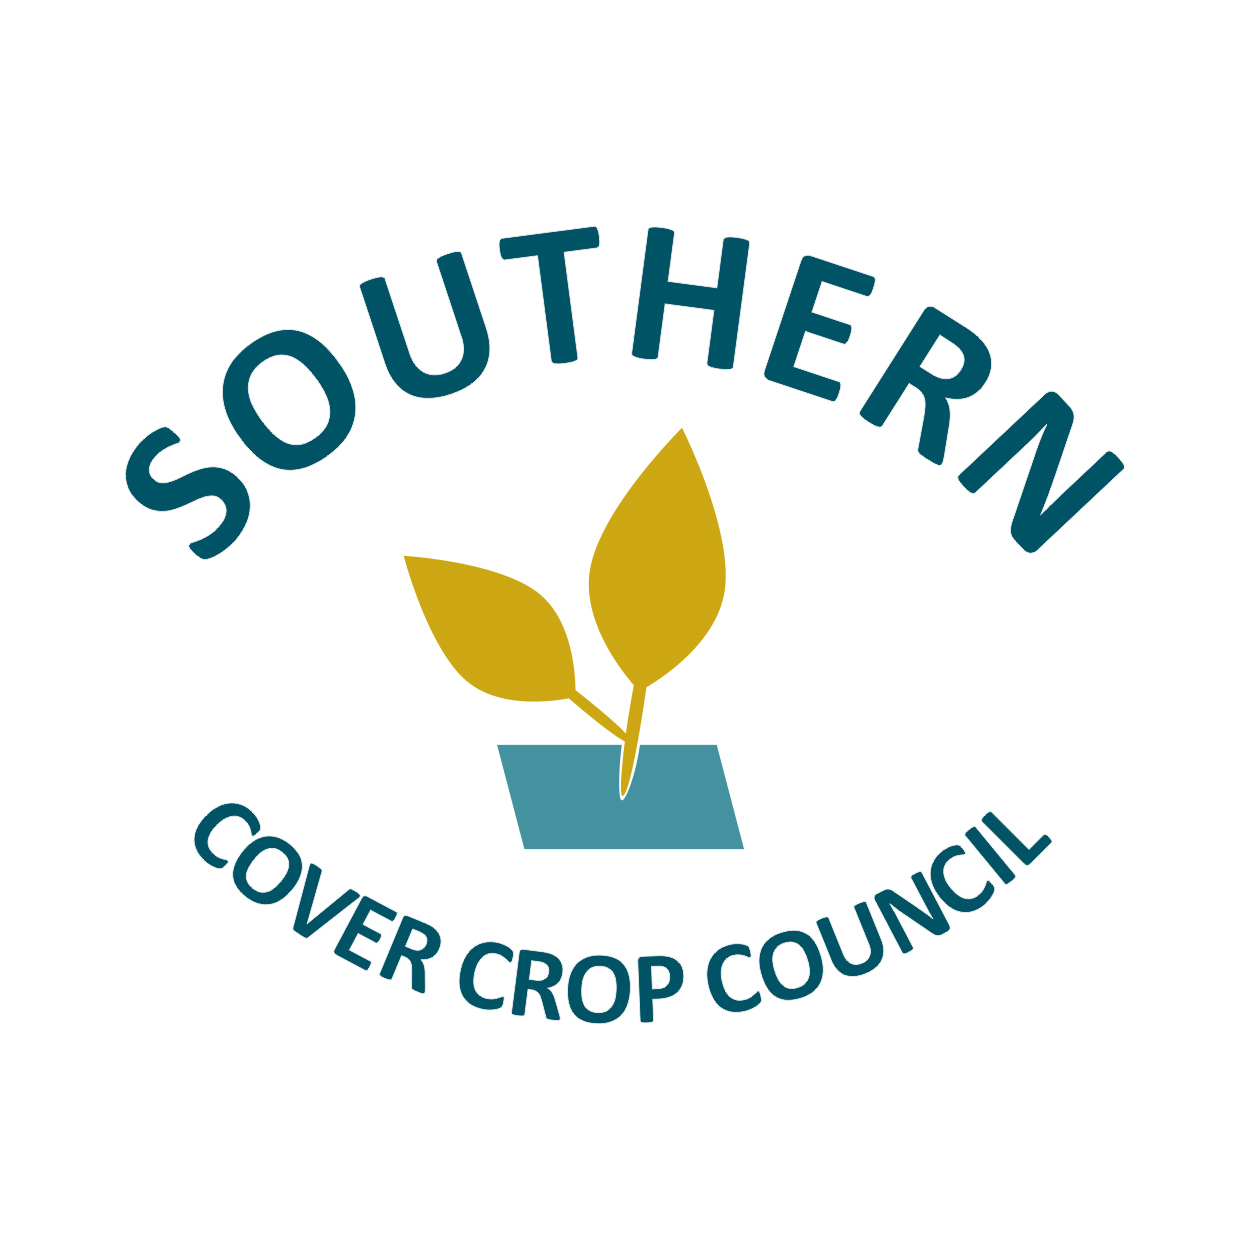 southern cover crop logo